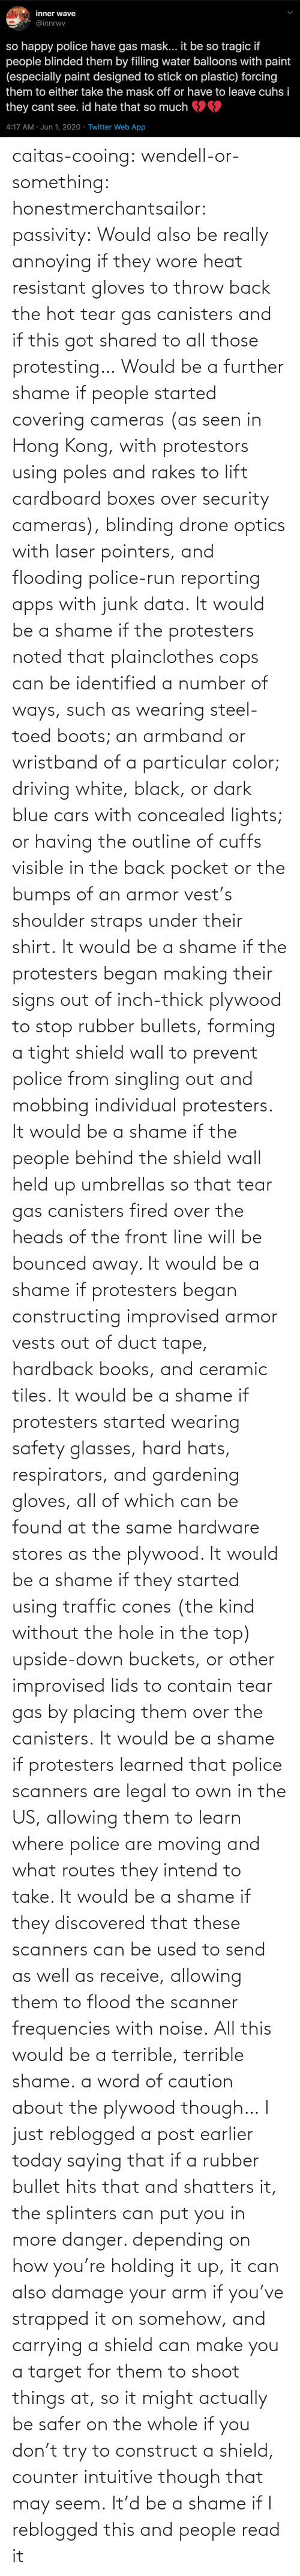 Found: caitas-cooing:  wendell-or-something: honestmerchantsailor:  passivity: Would also be really annoying if they wore heat resistant gloves to throw back the hot tear gas canisters and if this got shared to all those protesting… Would be a further shame if people started covering cameras (as seen in Hong Kong, with protestors using poles and rakes to lift cardboard boxes over security cameras), blinding drone optics with laser pointers, and flooding police-run reporting apps with junk data. It would be a shame if the protesters noted that plainclothes cops can be identified a number of ways, such as wearing steel-toed boots; an armband or wristband of a particular color; driving white, black, or dark blue cars with concealed lights; or having the outline of cuffs visible in the back pocket or the bumps of an armor vest's shoulder straps under their shirt. It would be a shame if the protesters began making their signs out of inch-thick plywood to stop rubber bullets, forming a tight shield wall to prevent police from singling out and mobbing individual protesters. It would be a shame if the people behind the shield wall held up umbrellas so that tear gas canisters fired over the heads of the front line will be bounced away. It would be a shame if protesters began constructing improvised armor vests out of duct tape, hardback books, and ceramic tiles. It would be a shame if protesters started wearing safety glasses, hard hats, respirators, and gardening gloves, all of which can be found at the same hardware stores as the plywood. It would be a shame if they started using traffic cones (the kind without the hole in the top) upside-down buckets, or other improvised lids to contain tear gas by placing them over the canisters. It would be a shame if protesters learned that police scanners are legal to own in the US, allowing them to learn where police are moving and what routes they intend to take. It would be a shame if they discovered that these scanners can be used to send as well as receive, allowing them to flood the scanner frequencies with noise. All this would be a terrible, terrible shame.    a word of caution about the plywood though… I just reblogged a post earlier today saying that if a rubber bullet hits that and shatters it, the splinters can put you in more danger. depending on how you're holding it up, it can also damage your arm if you've strapped it on somehow, and carrying a shield can make you a target for them to shoot things at, so it might actually be safer on the whole if you don't try to construct a shield, counter intuitive though that may seem.    It'd be a shame if I reblogged this and people read it